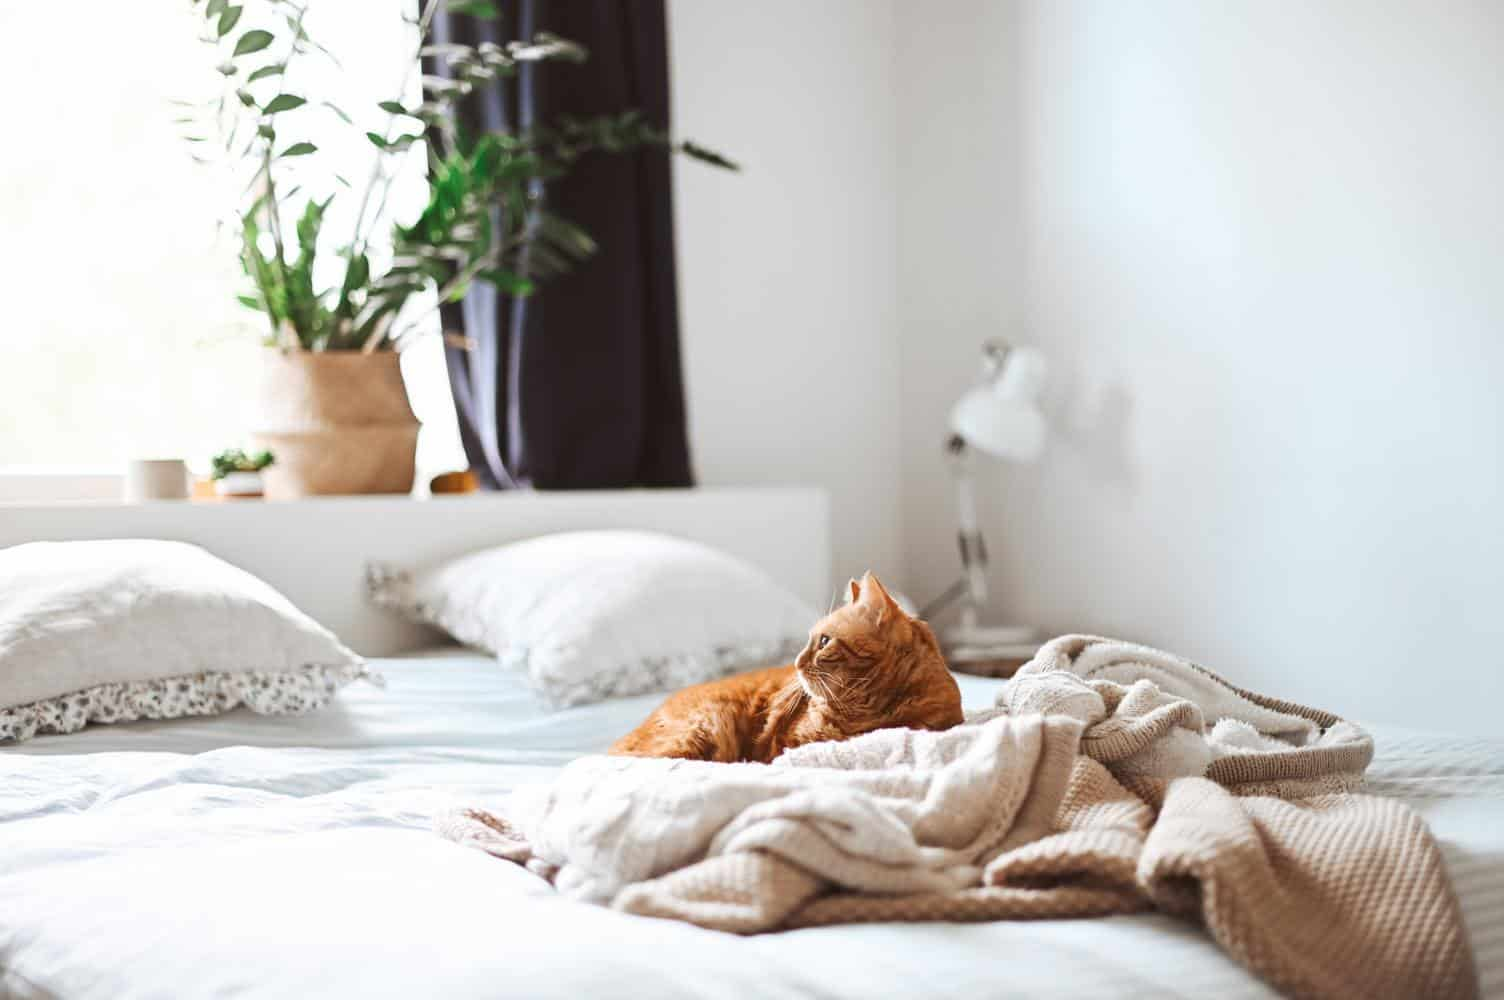 bed with cat and plant